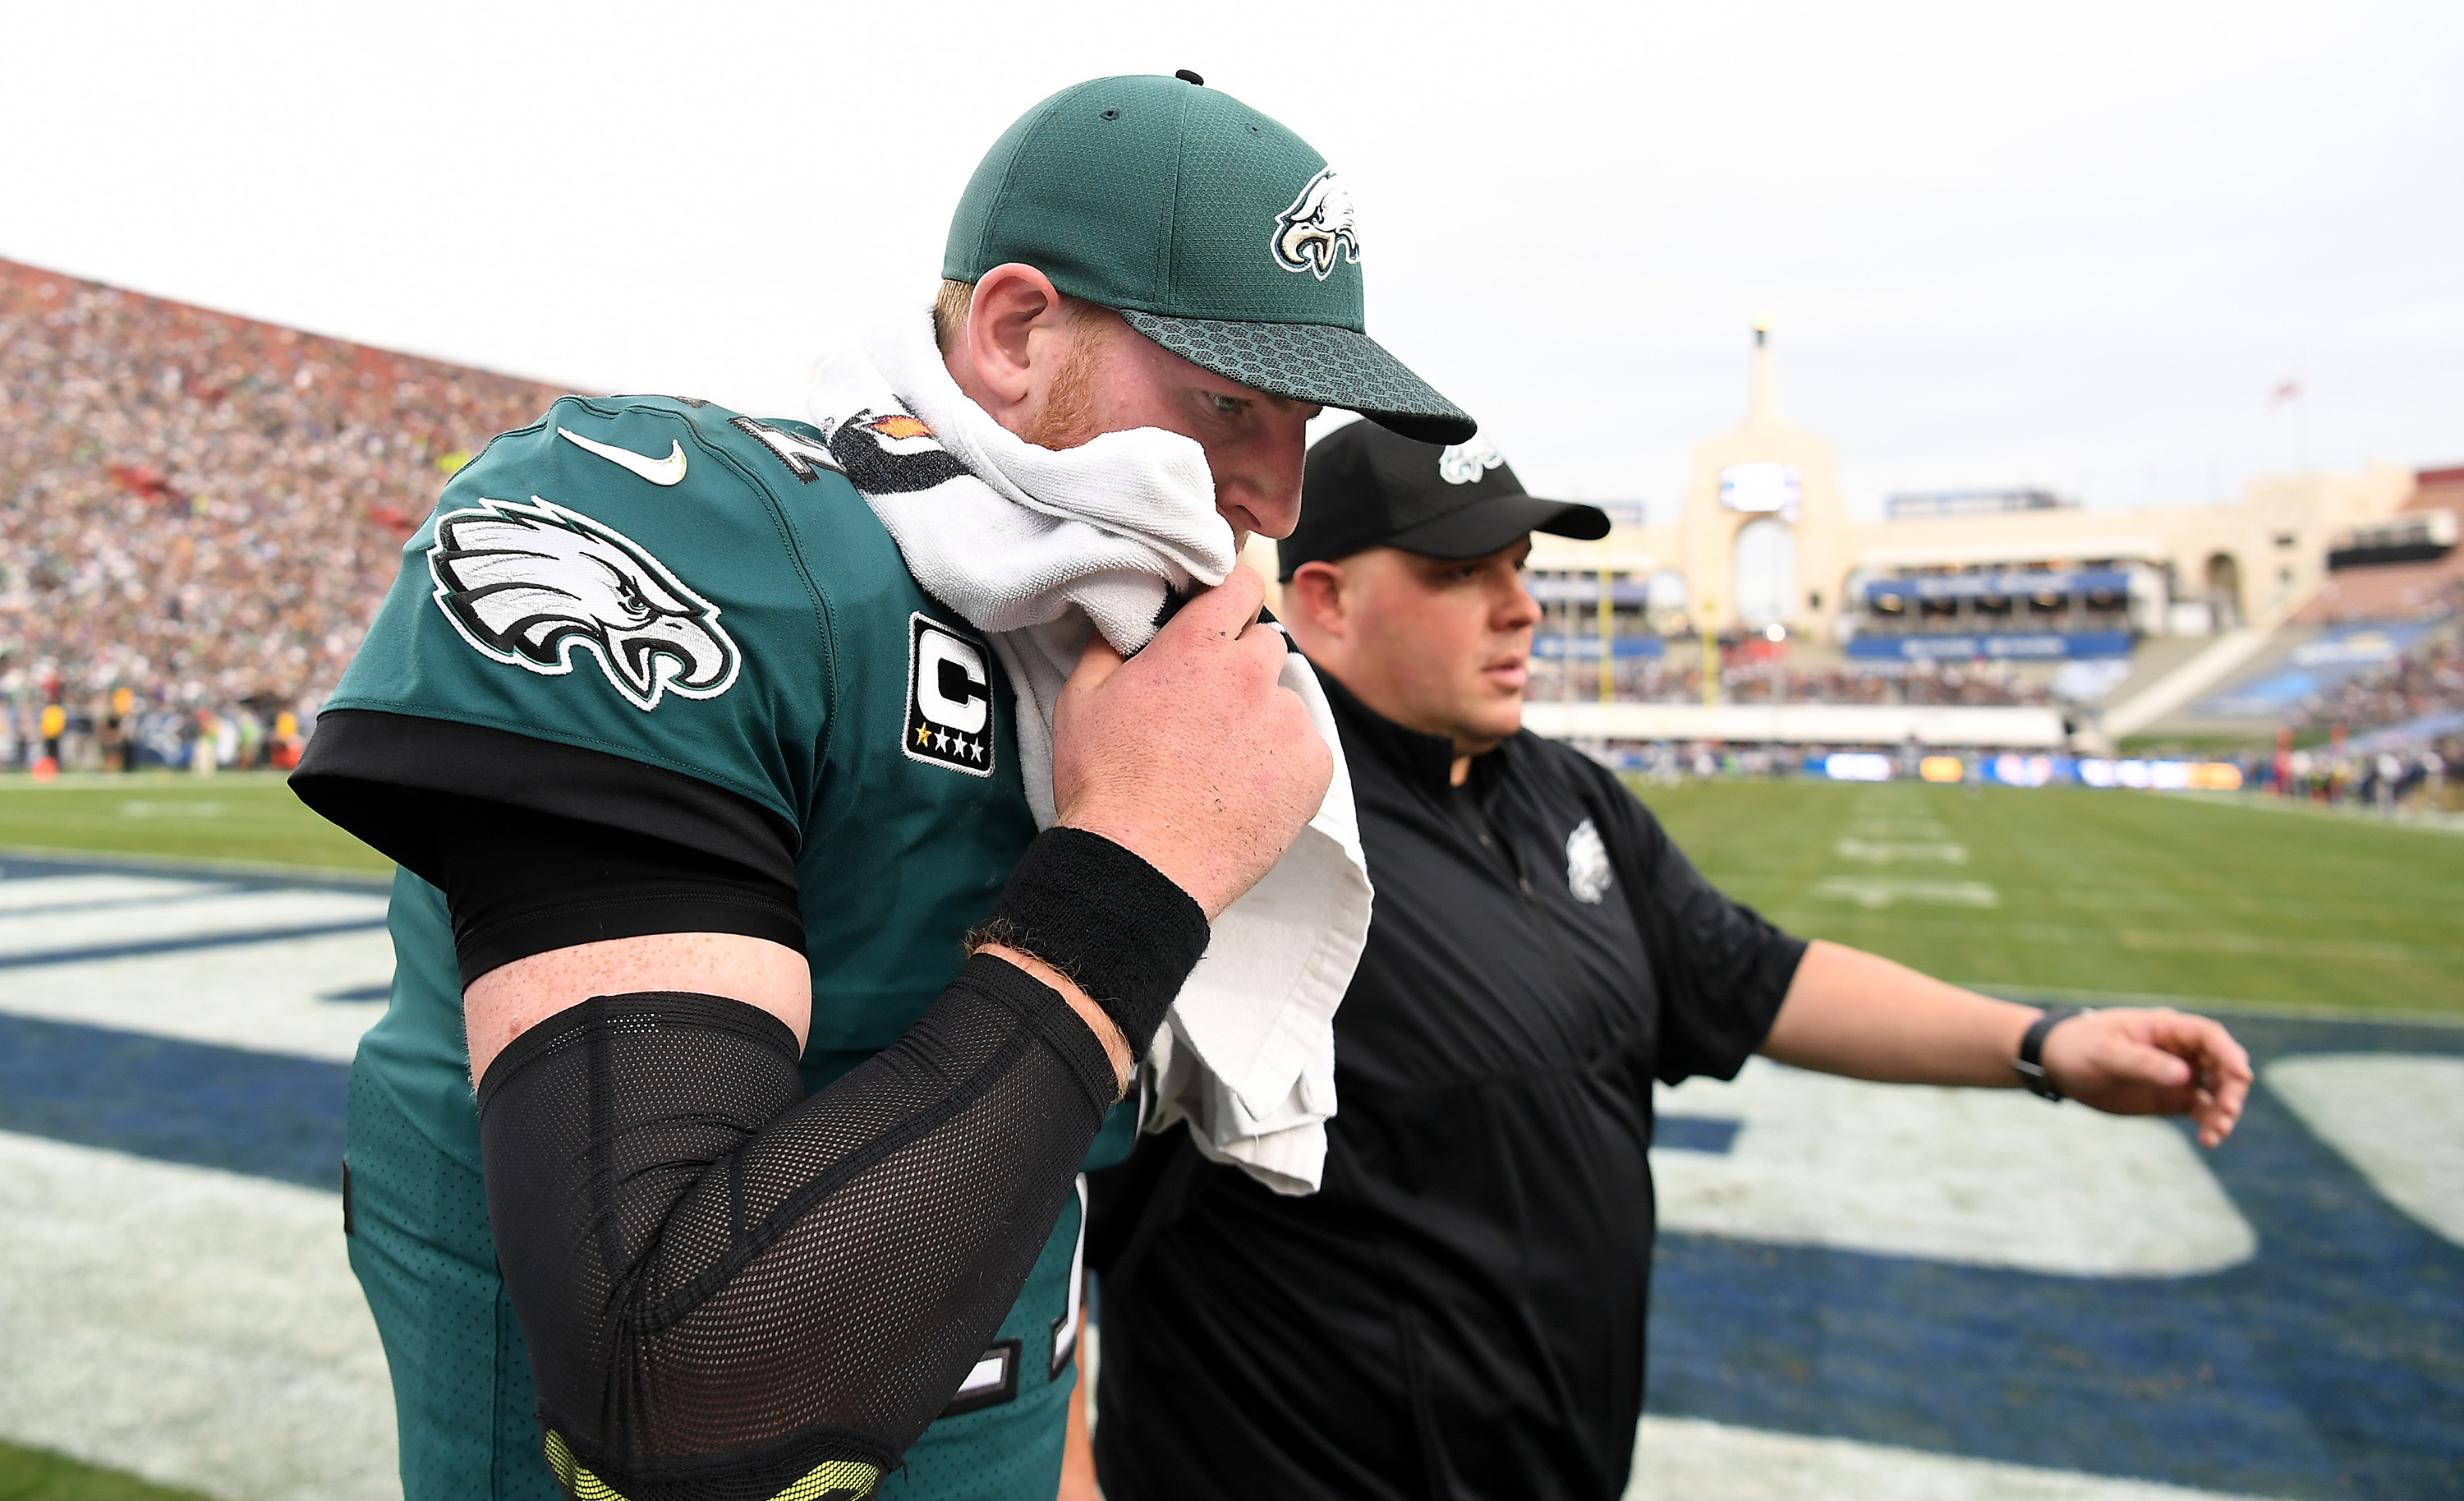 Eagles quarterback Carson Wentz walks off the field after injuring his knee.